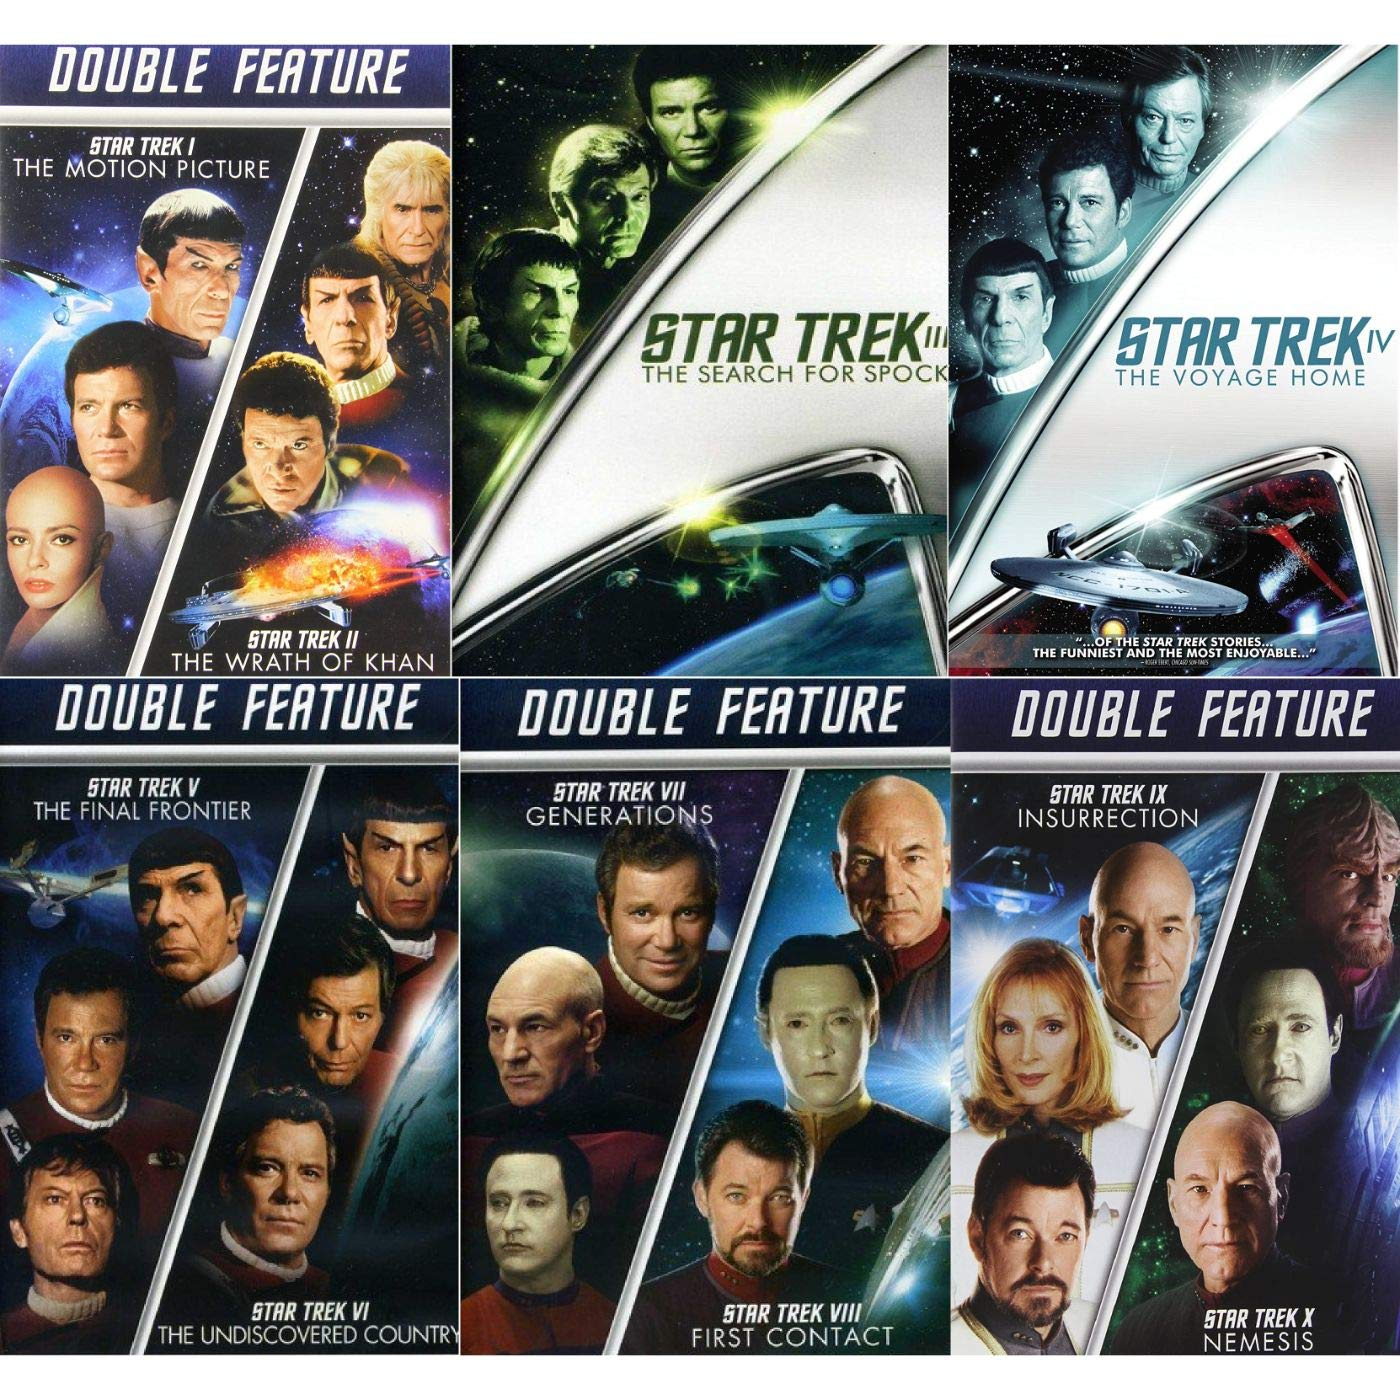 Star Trek 10 Movie DVD Collection: Wrath Kha Max We OFFer at cheap prices 82% OFF Motion Picture of